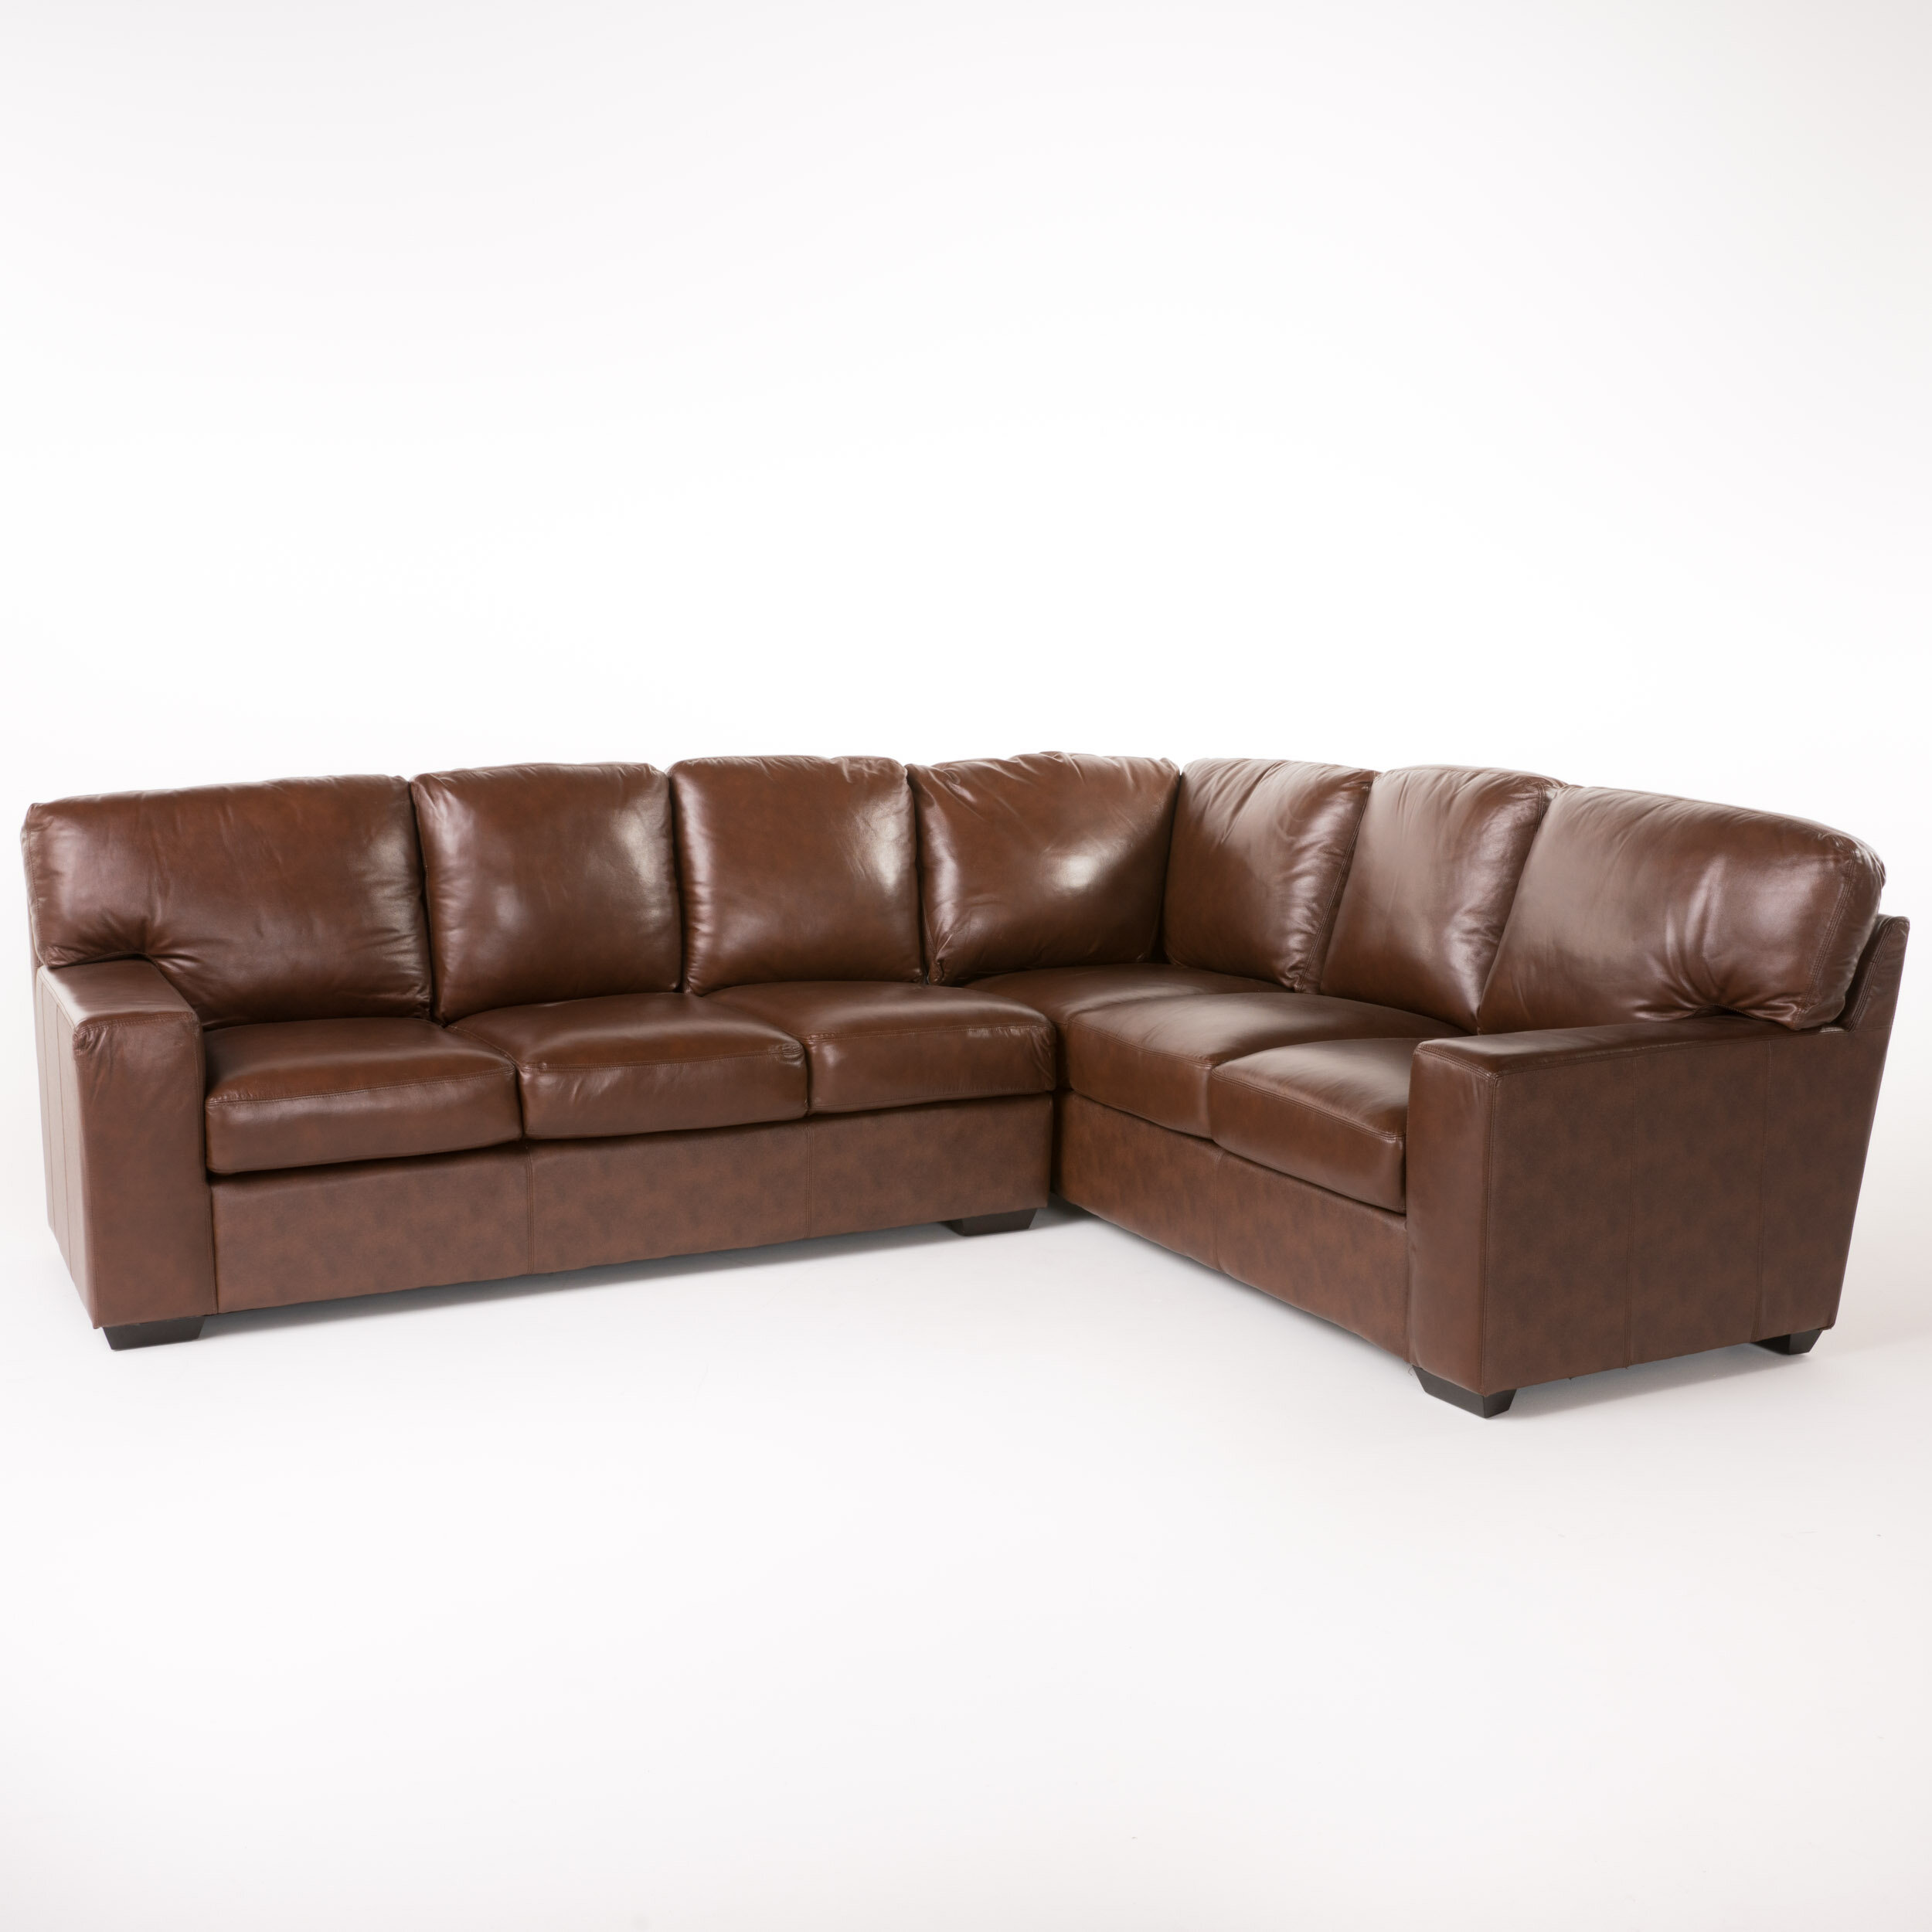 with bonded sectional elegantly this awesome is piece crafted chaise modern genuine sofas under leather